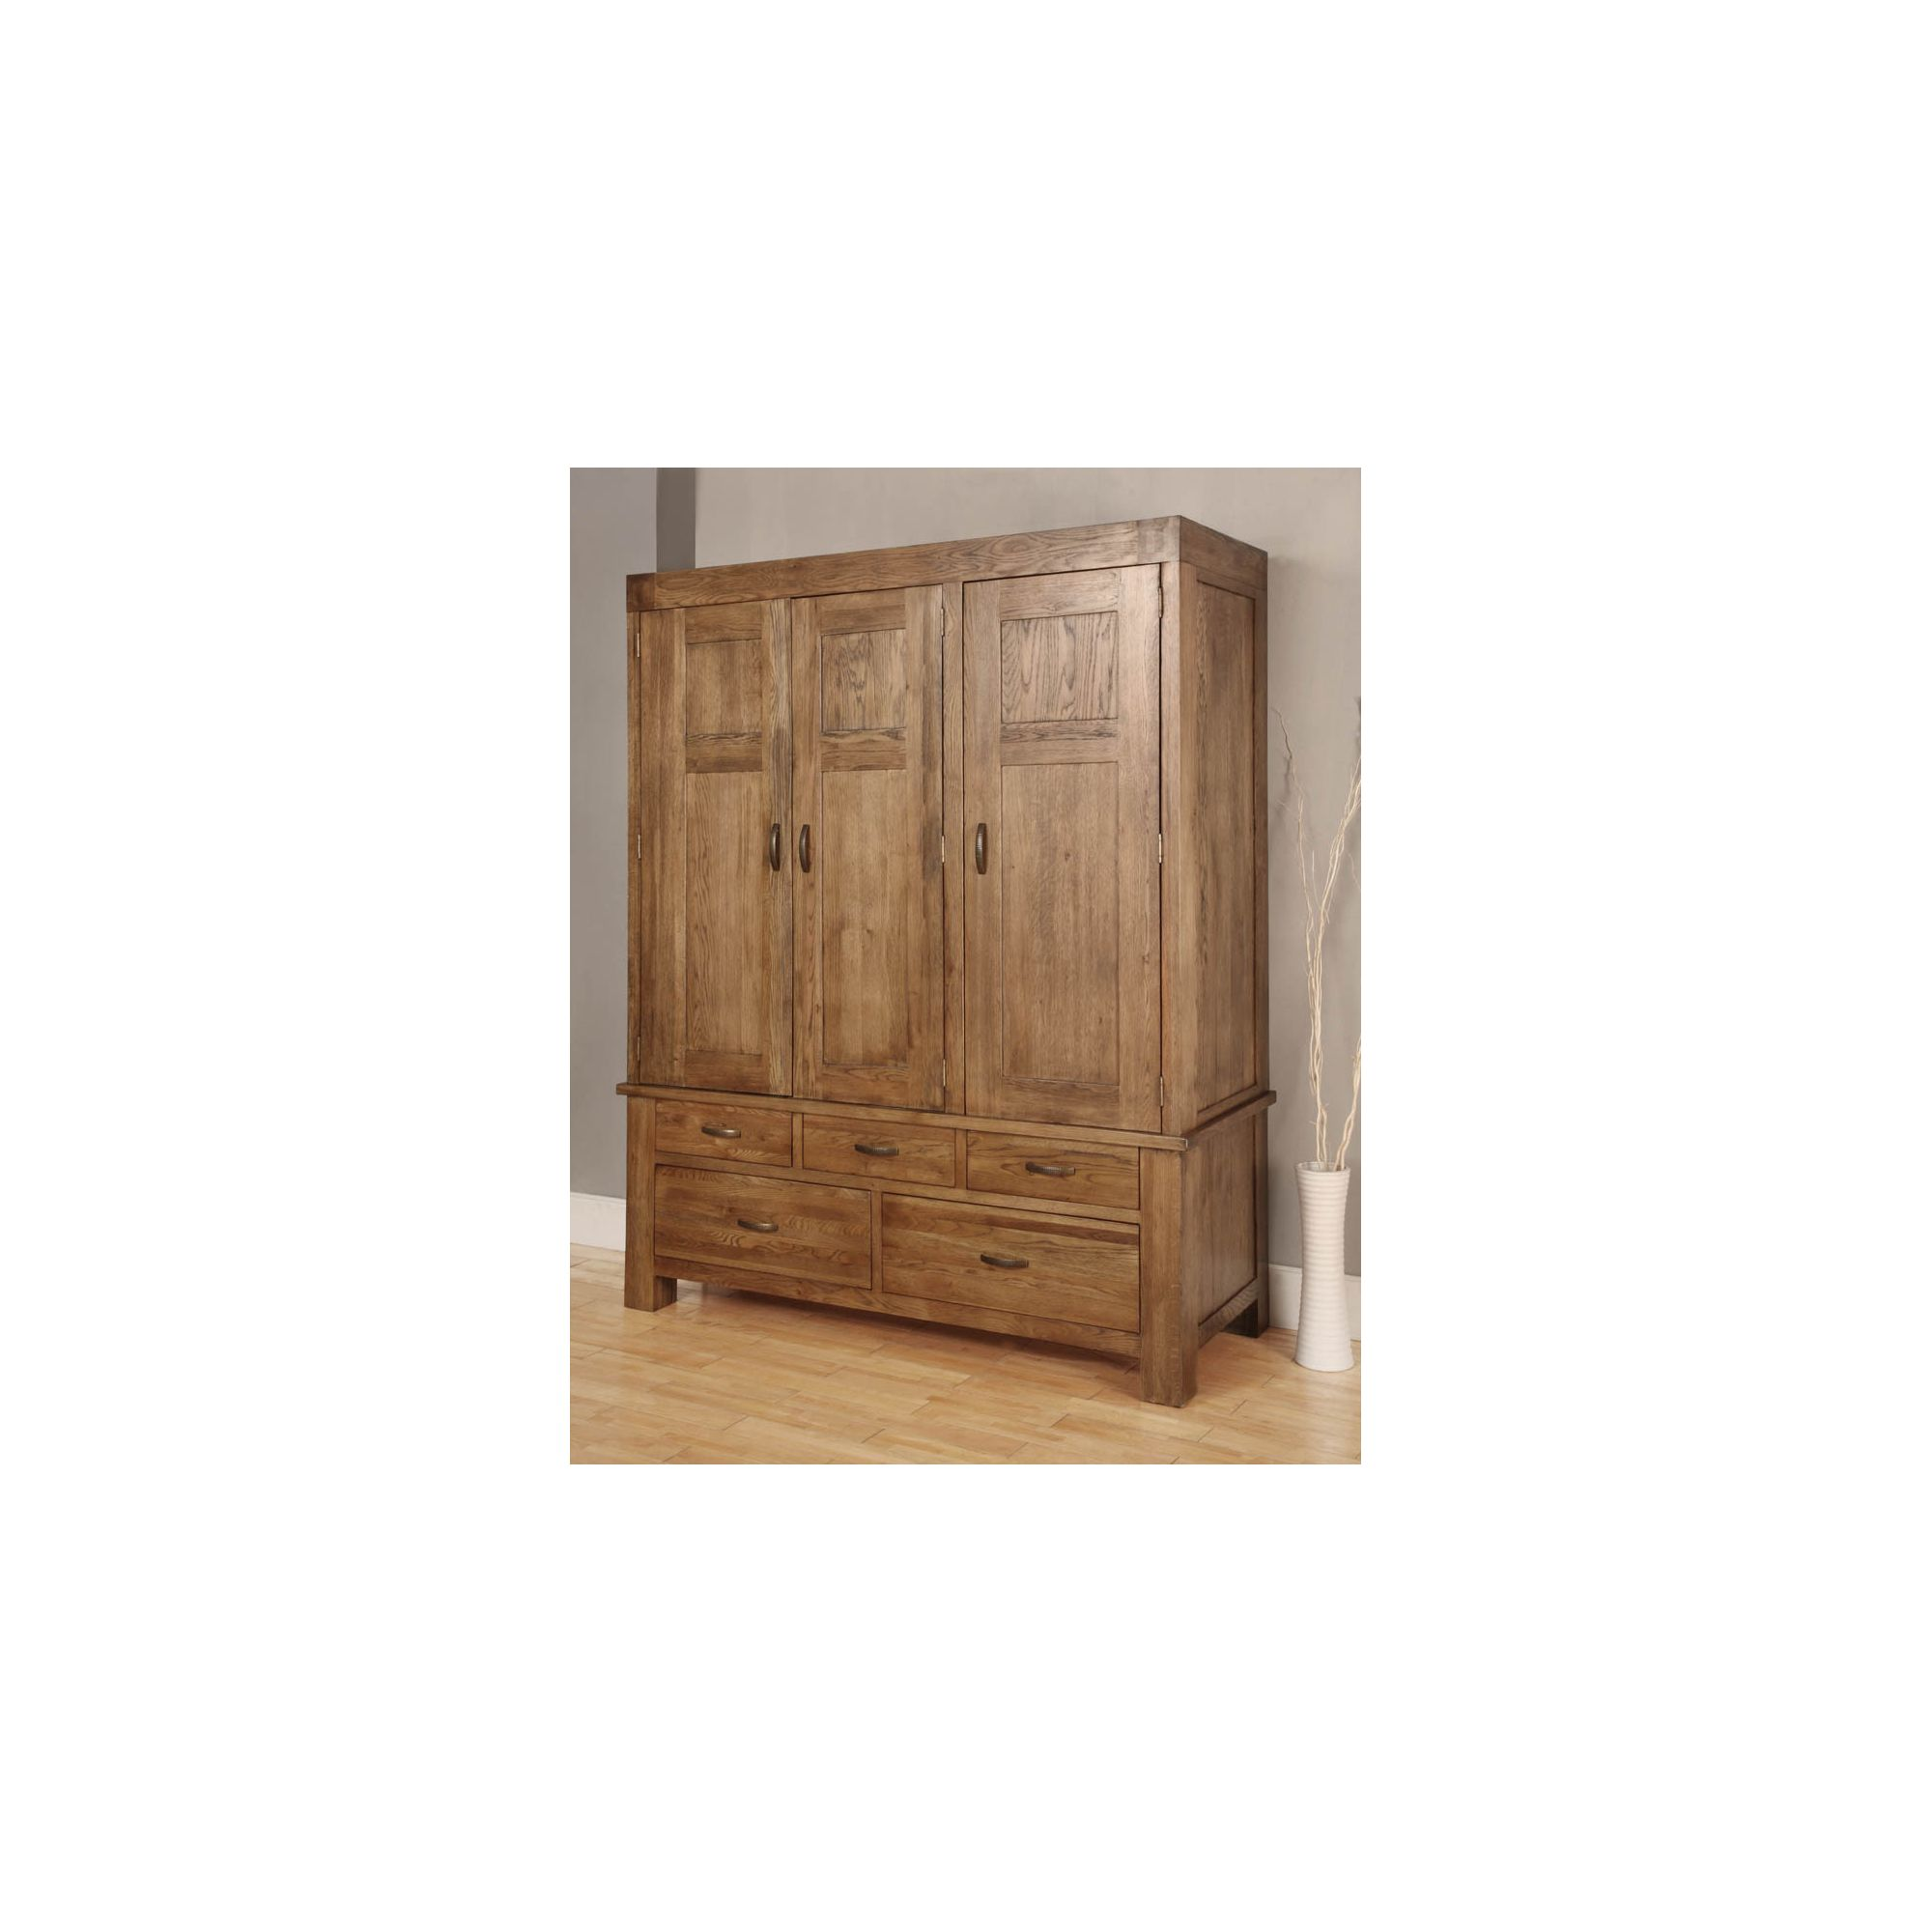 Hawkshead Santana Triple Wardrobe in Rich Patina at Tesco Direct